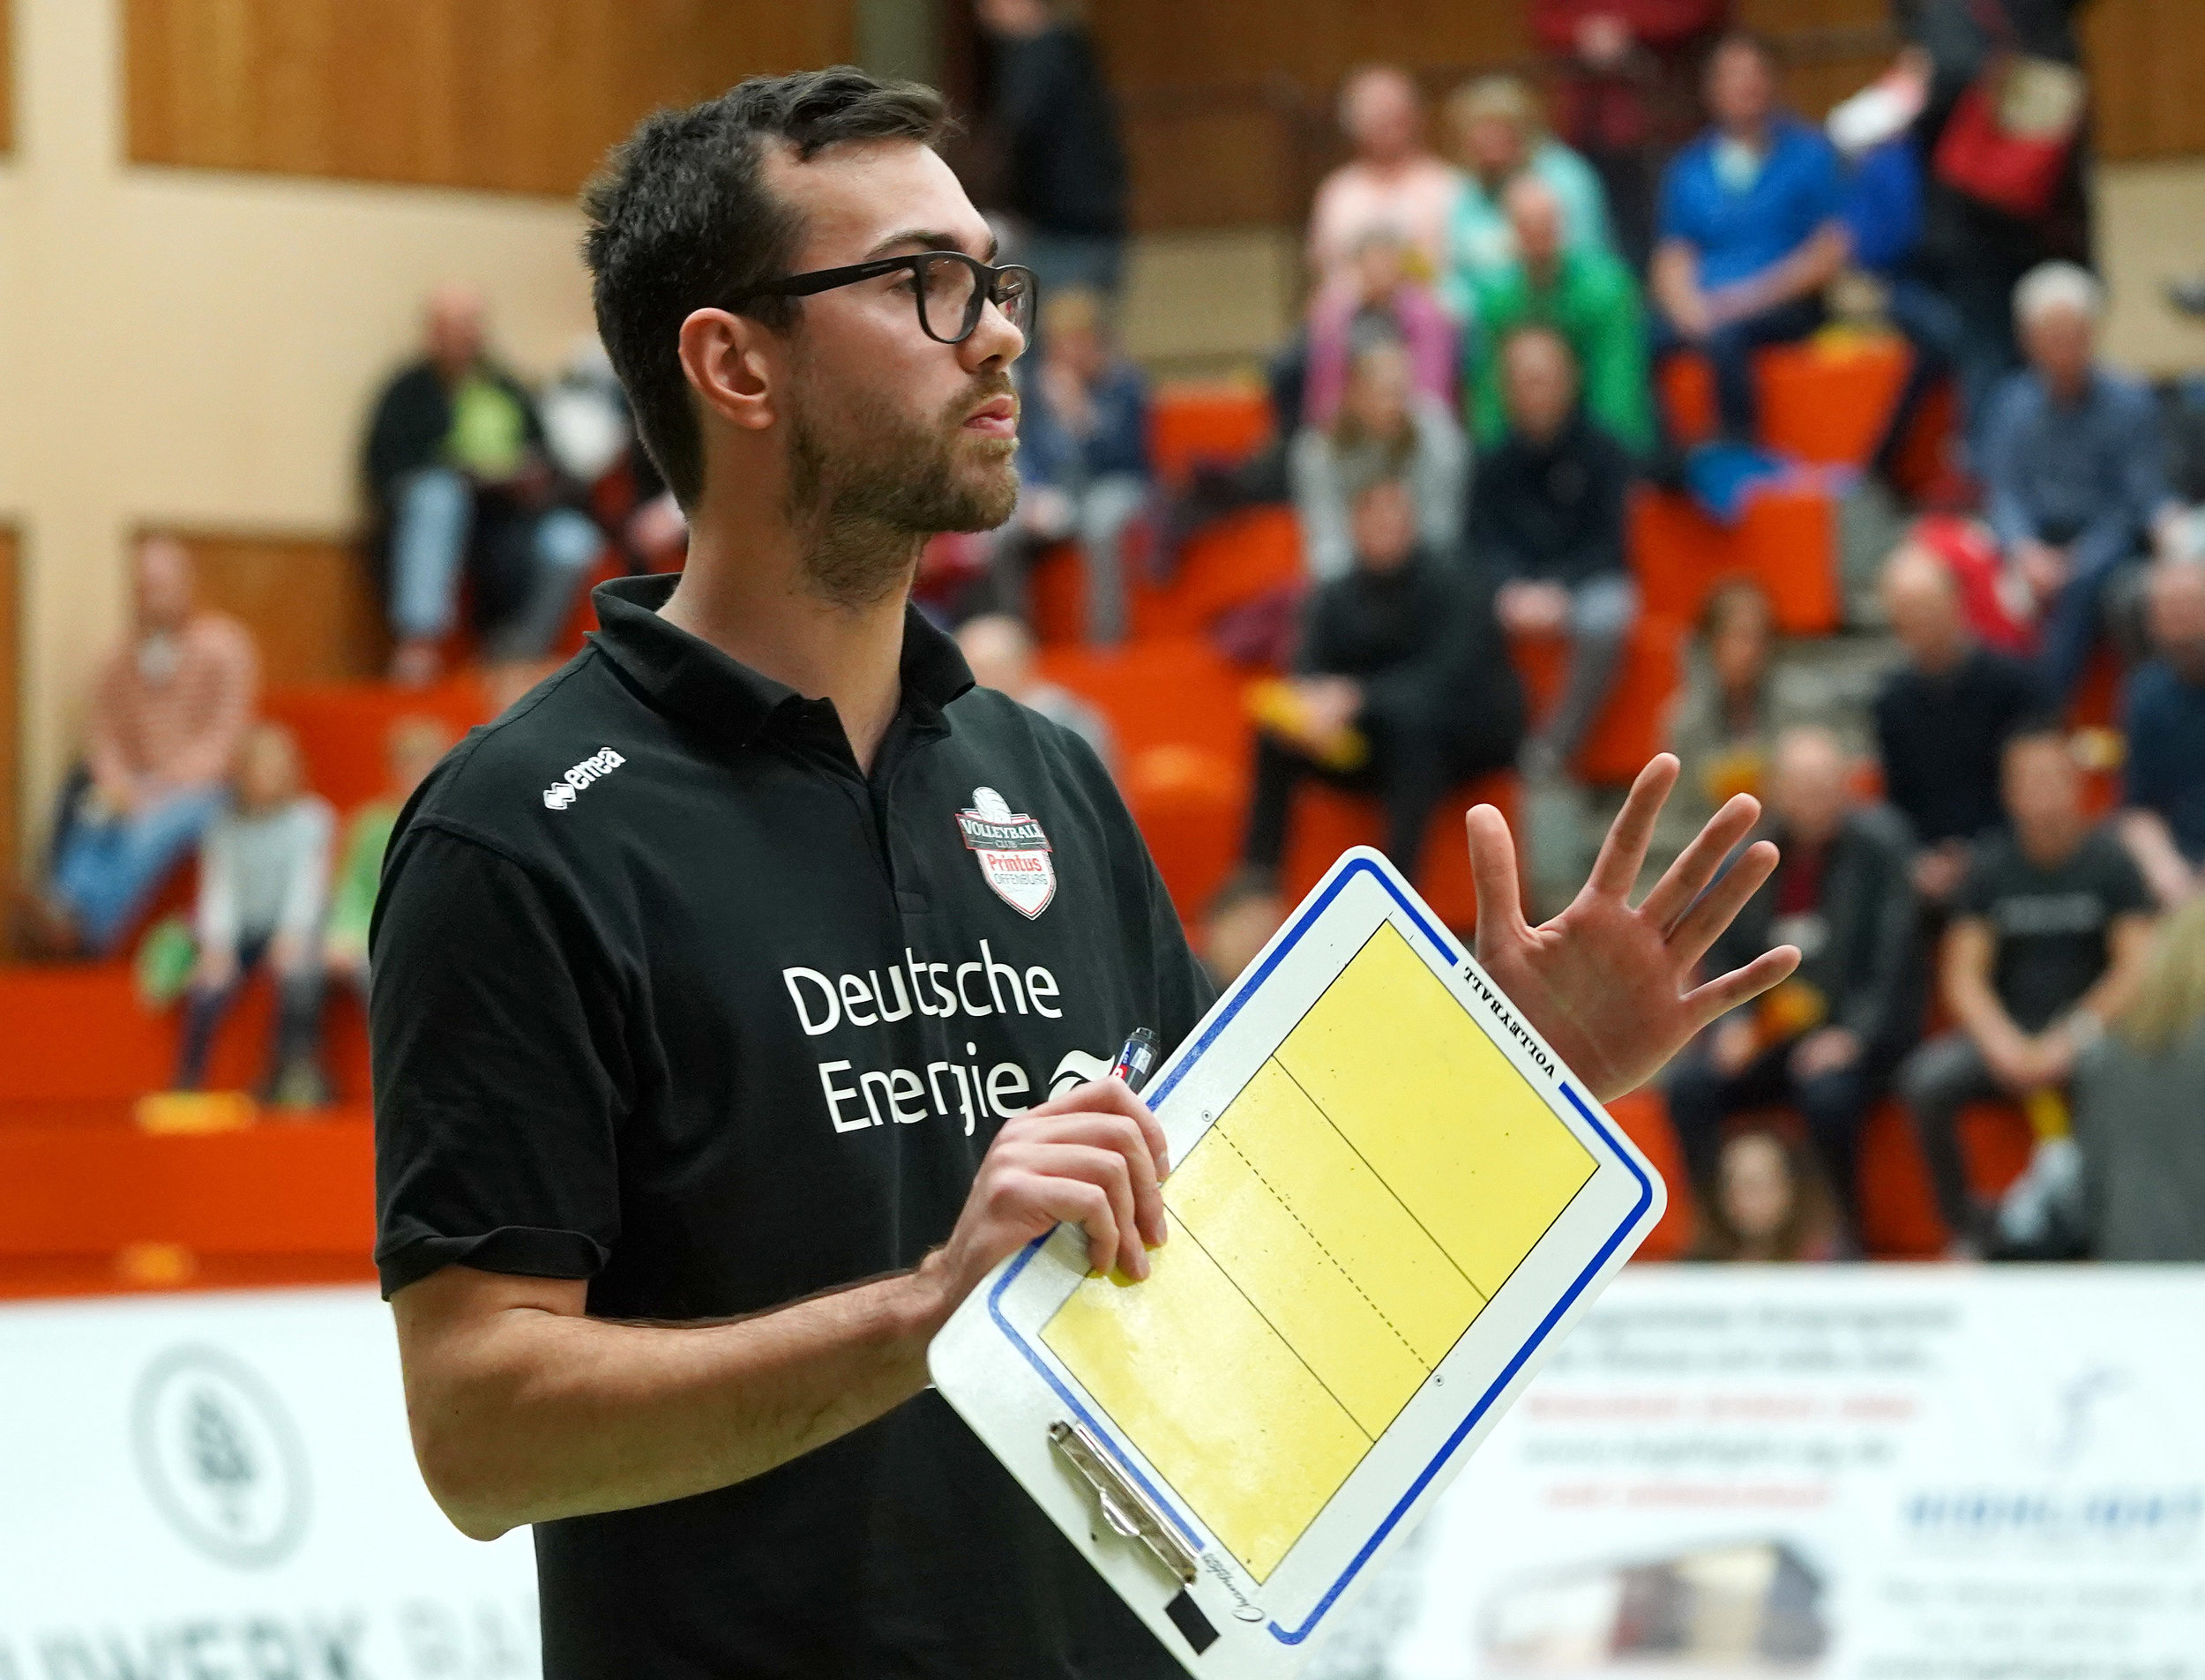 Florian Völker German Jr National team assistant + Sr national team volunteer since 4 years. - He also coached at the German National youth center of VCO Berlin which works with only National Team pipeline youth. Florian won the championship in the 2. League in Germany with his current club, VC Printus Offenburg in 2018 and 2019 and works especially with young players to develop them for a career as a pro player. Before his coaching career he played 5 years professional as a setter in Germany's top division. During his time as a pro player he worked in off-season with international beach-volleyball teams on FIVB world tour